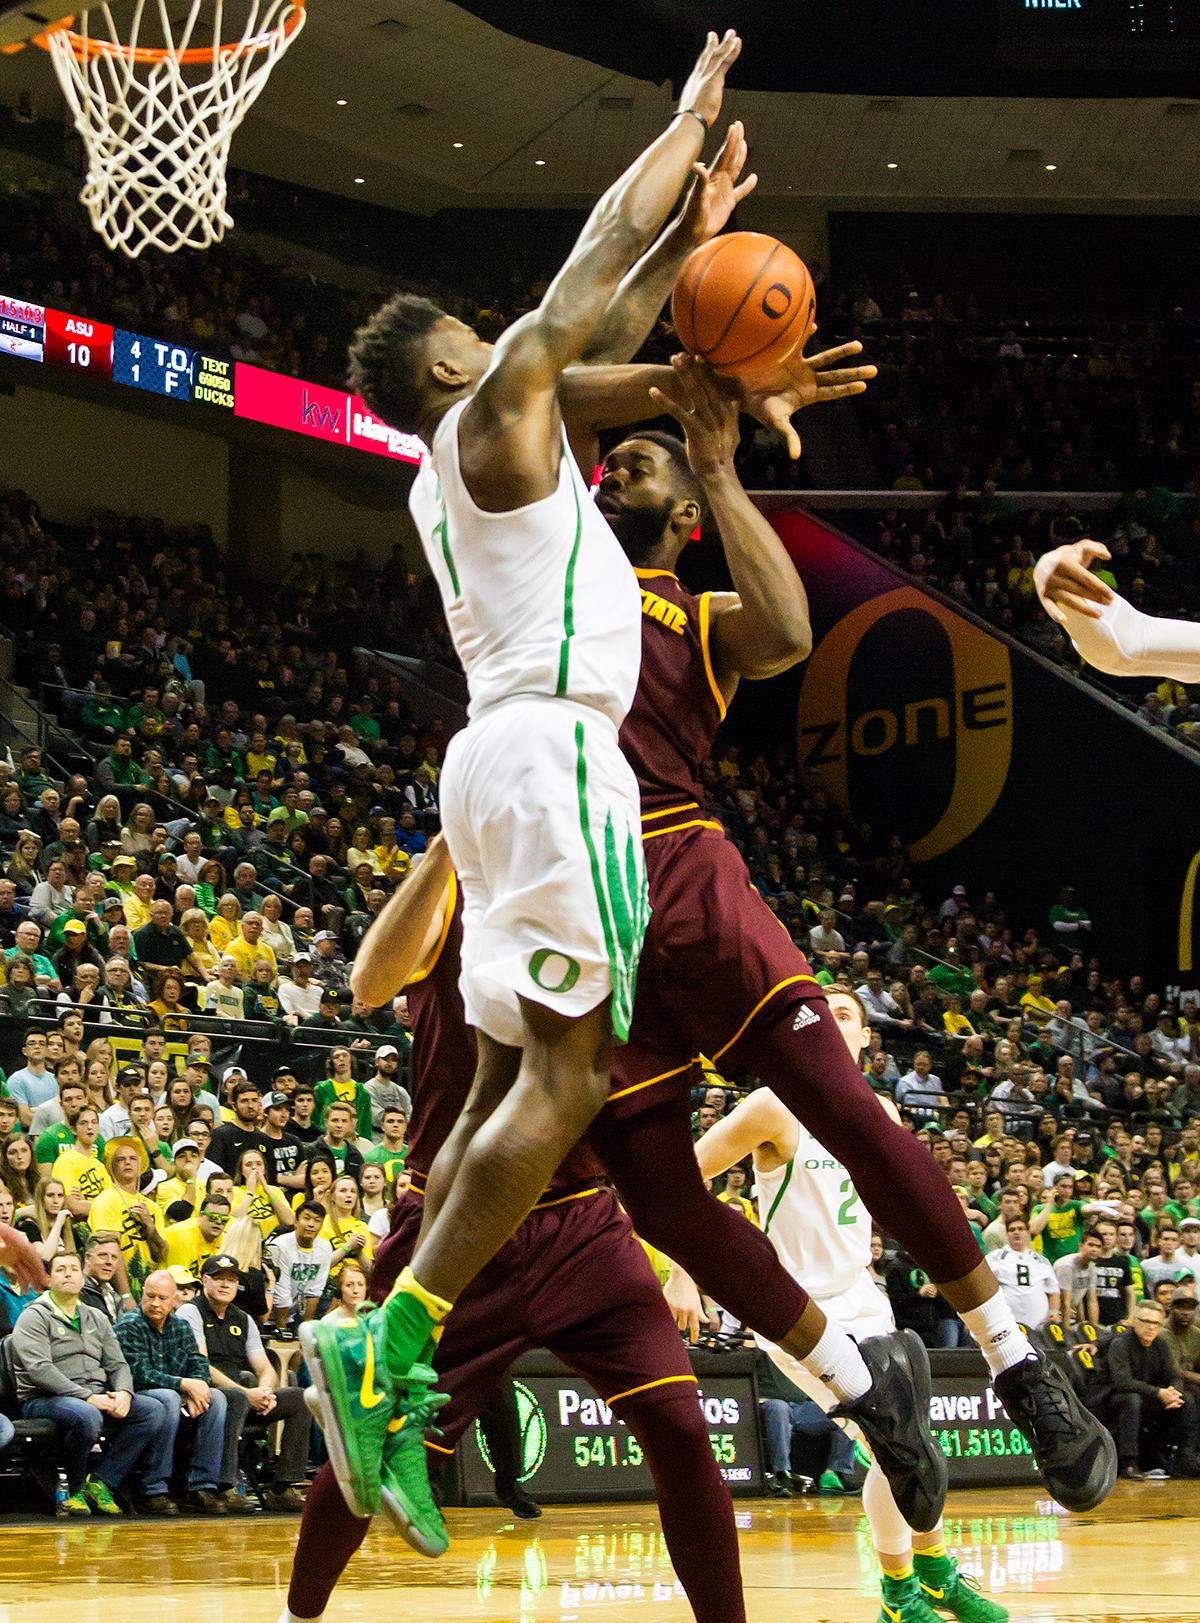 Oregon forward Jordan Bell (#1) blocks an attempted layup by Arizona State forward Obinna Oleka (#5). The Oregon Ducks defeated the Arizona State Sun Devils 71 to 70. Photo by Ben Lonergan, Oregon News Lab